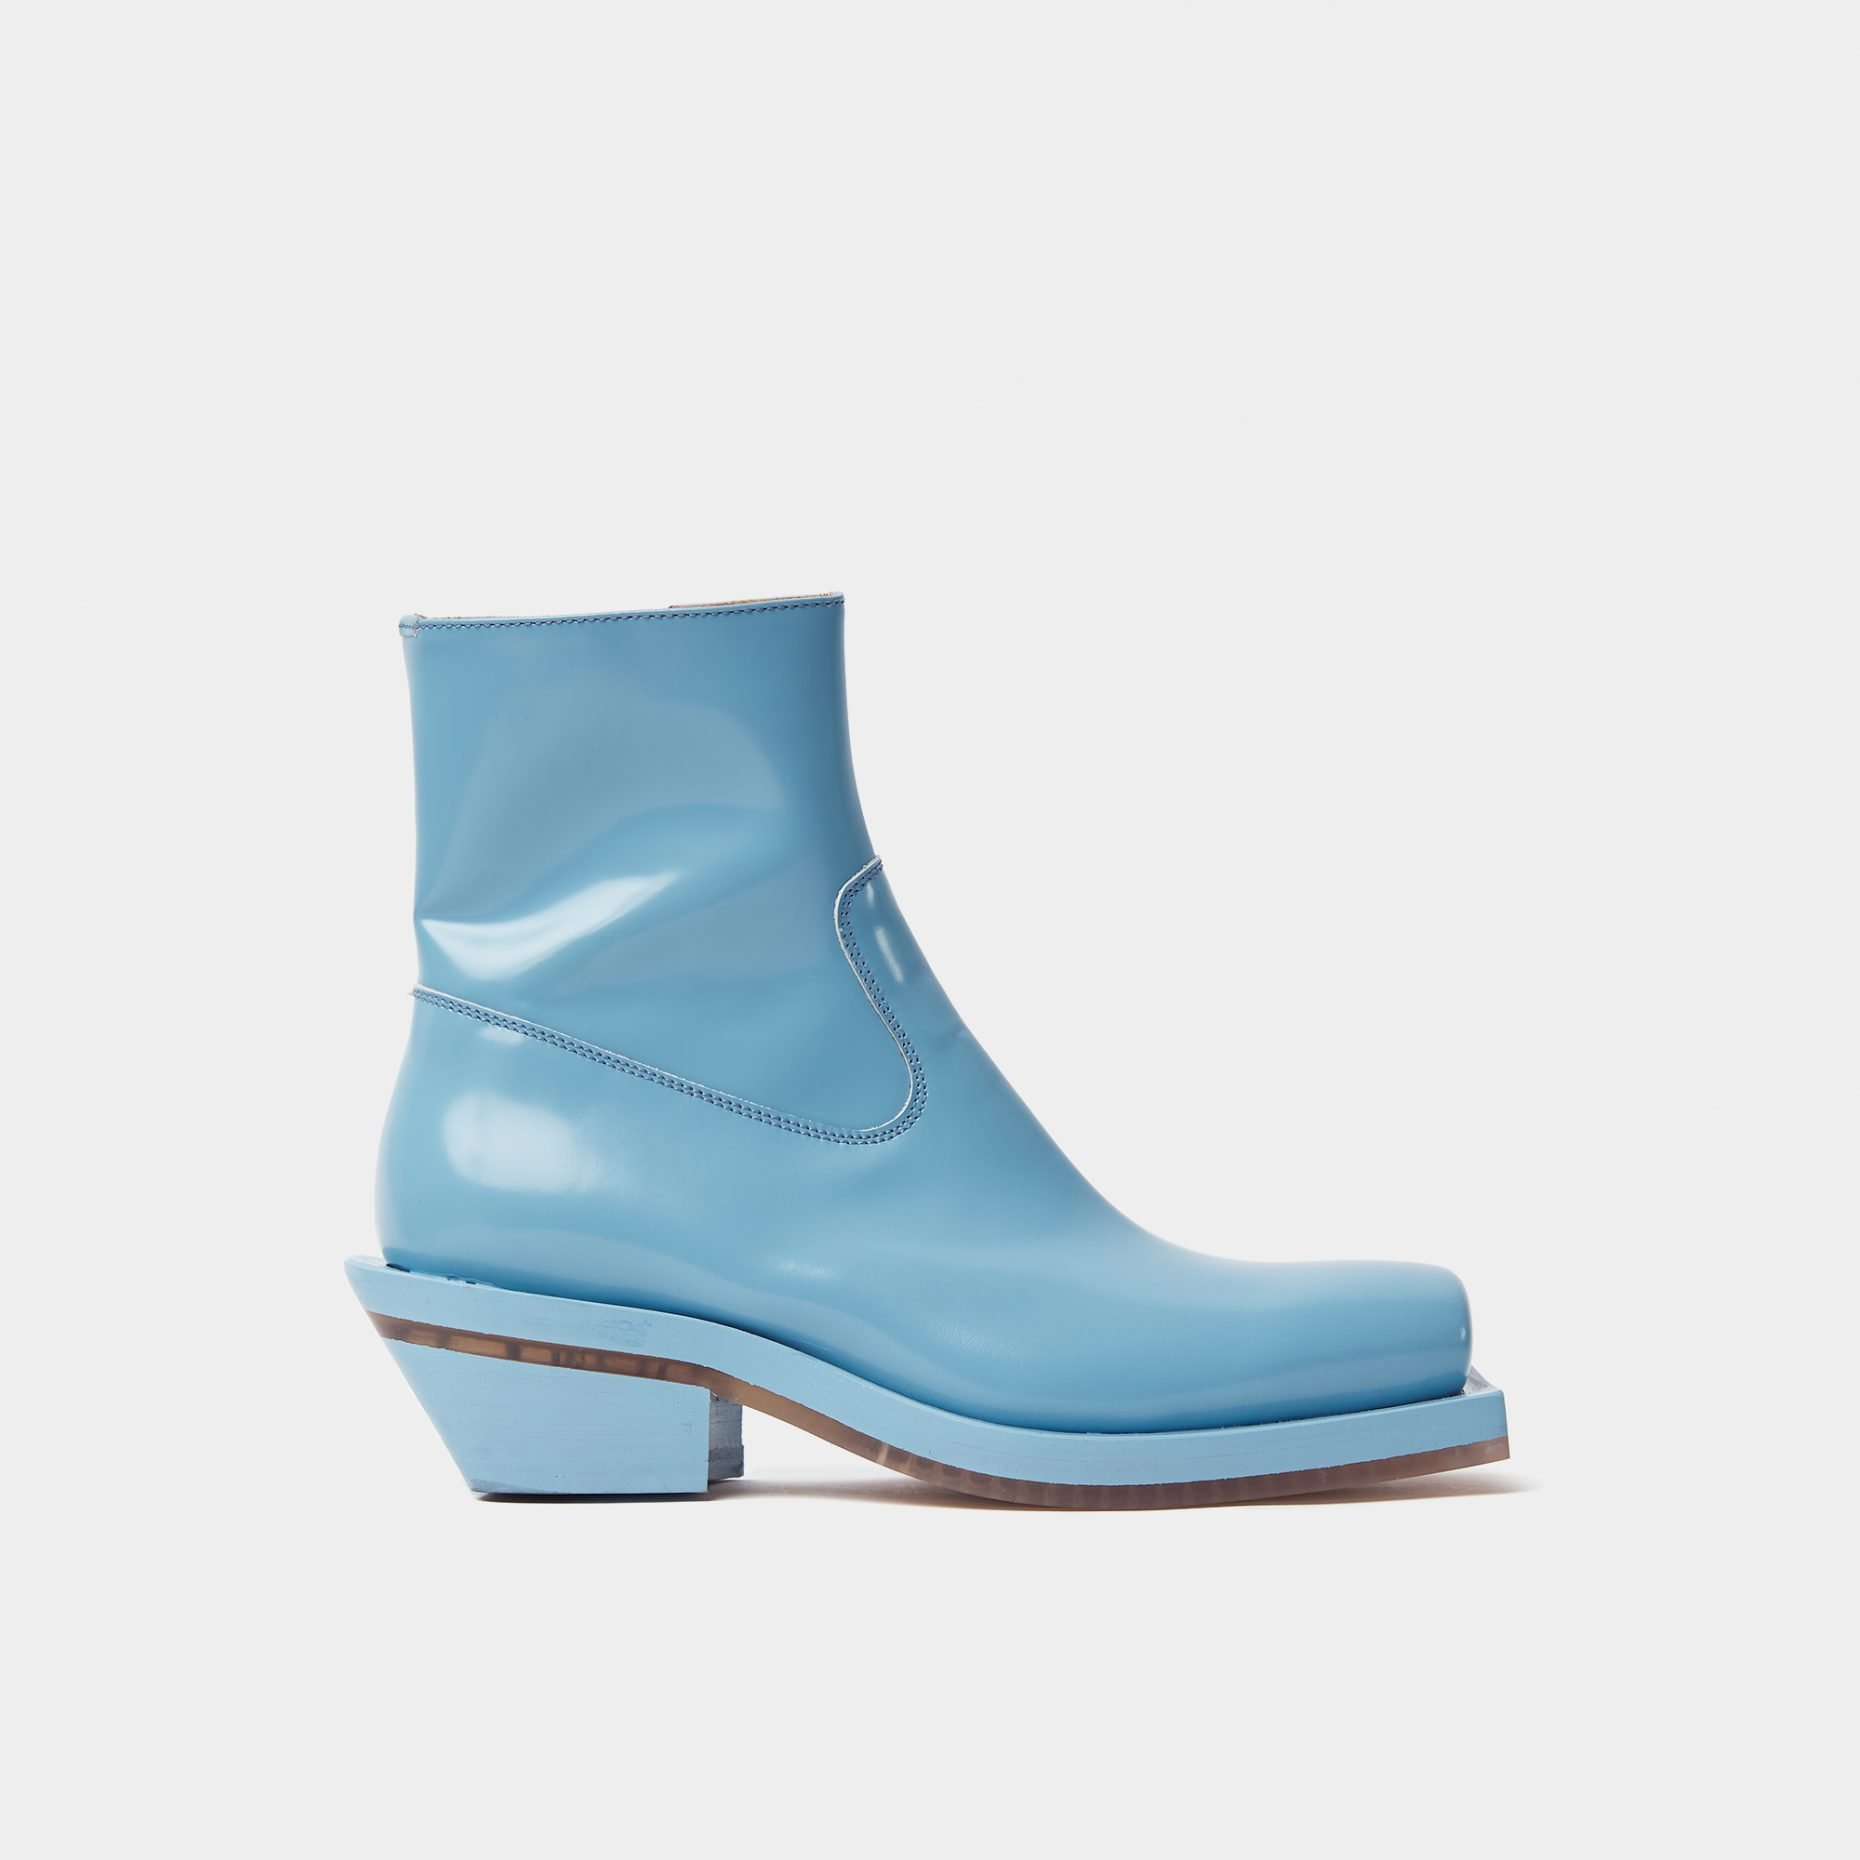 ION Squared Toe Boots